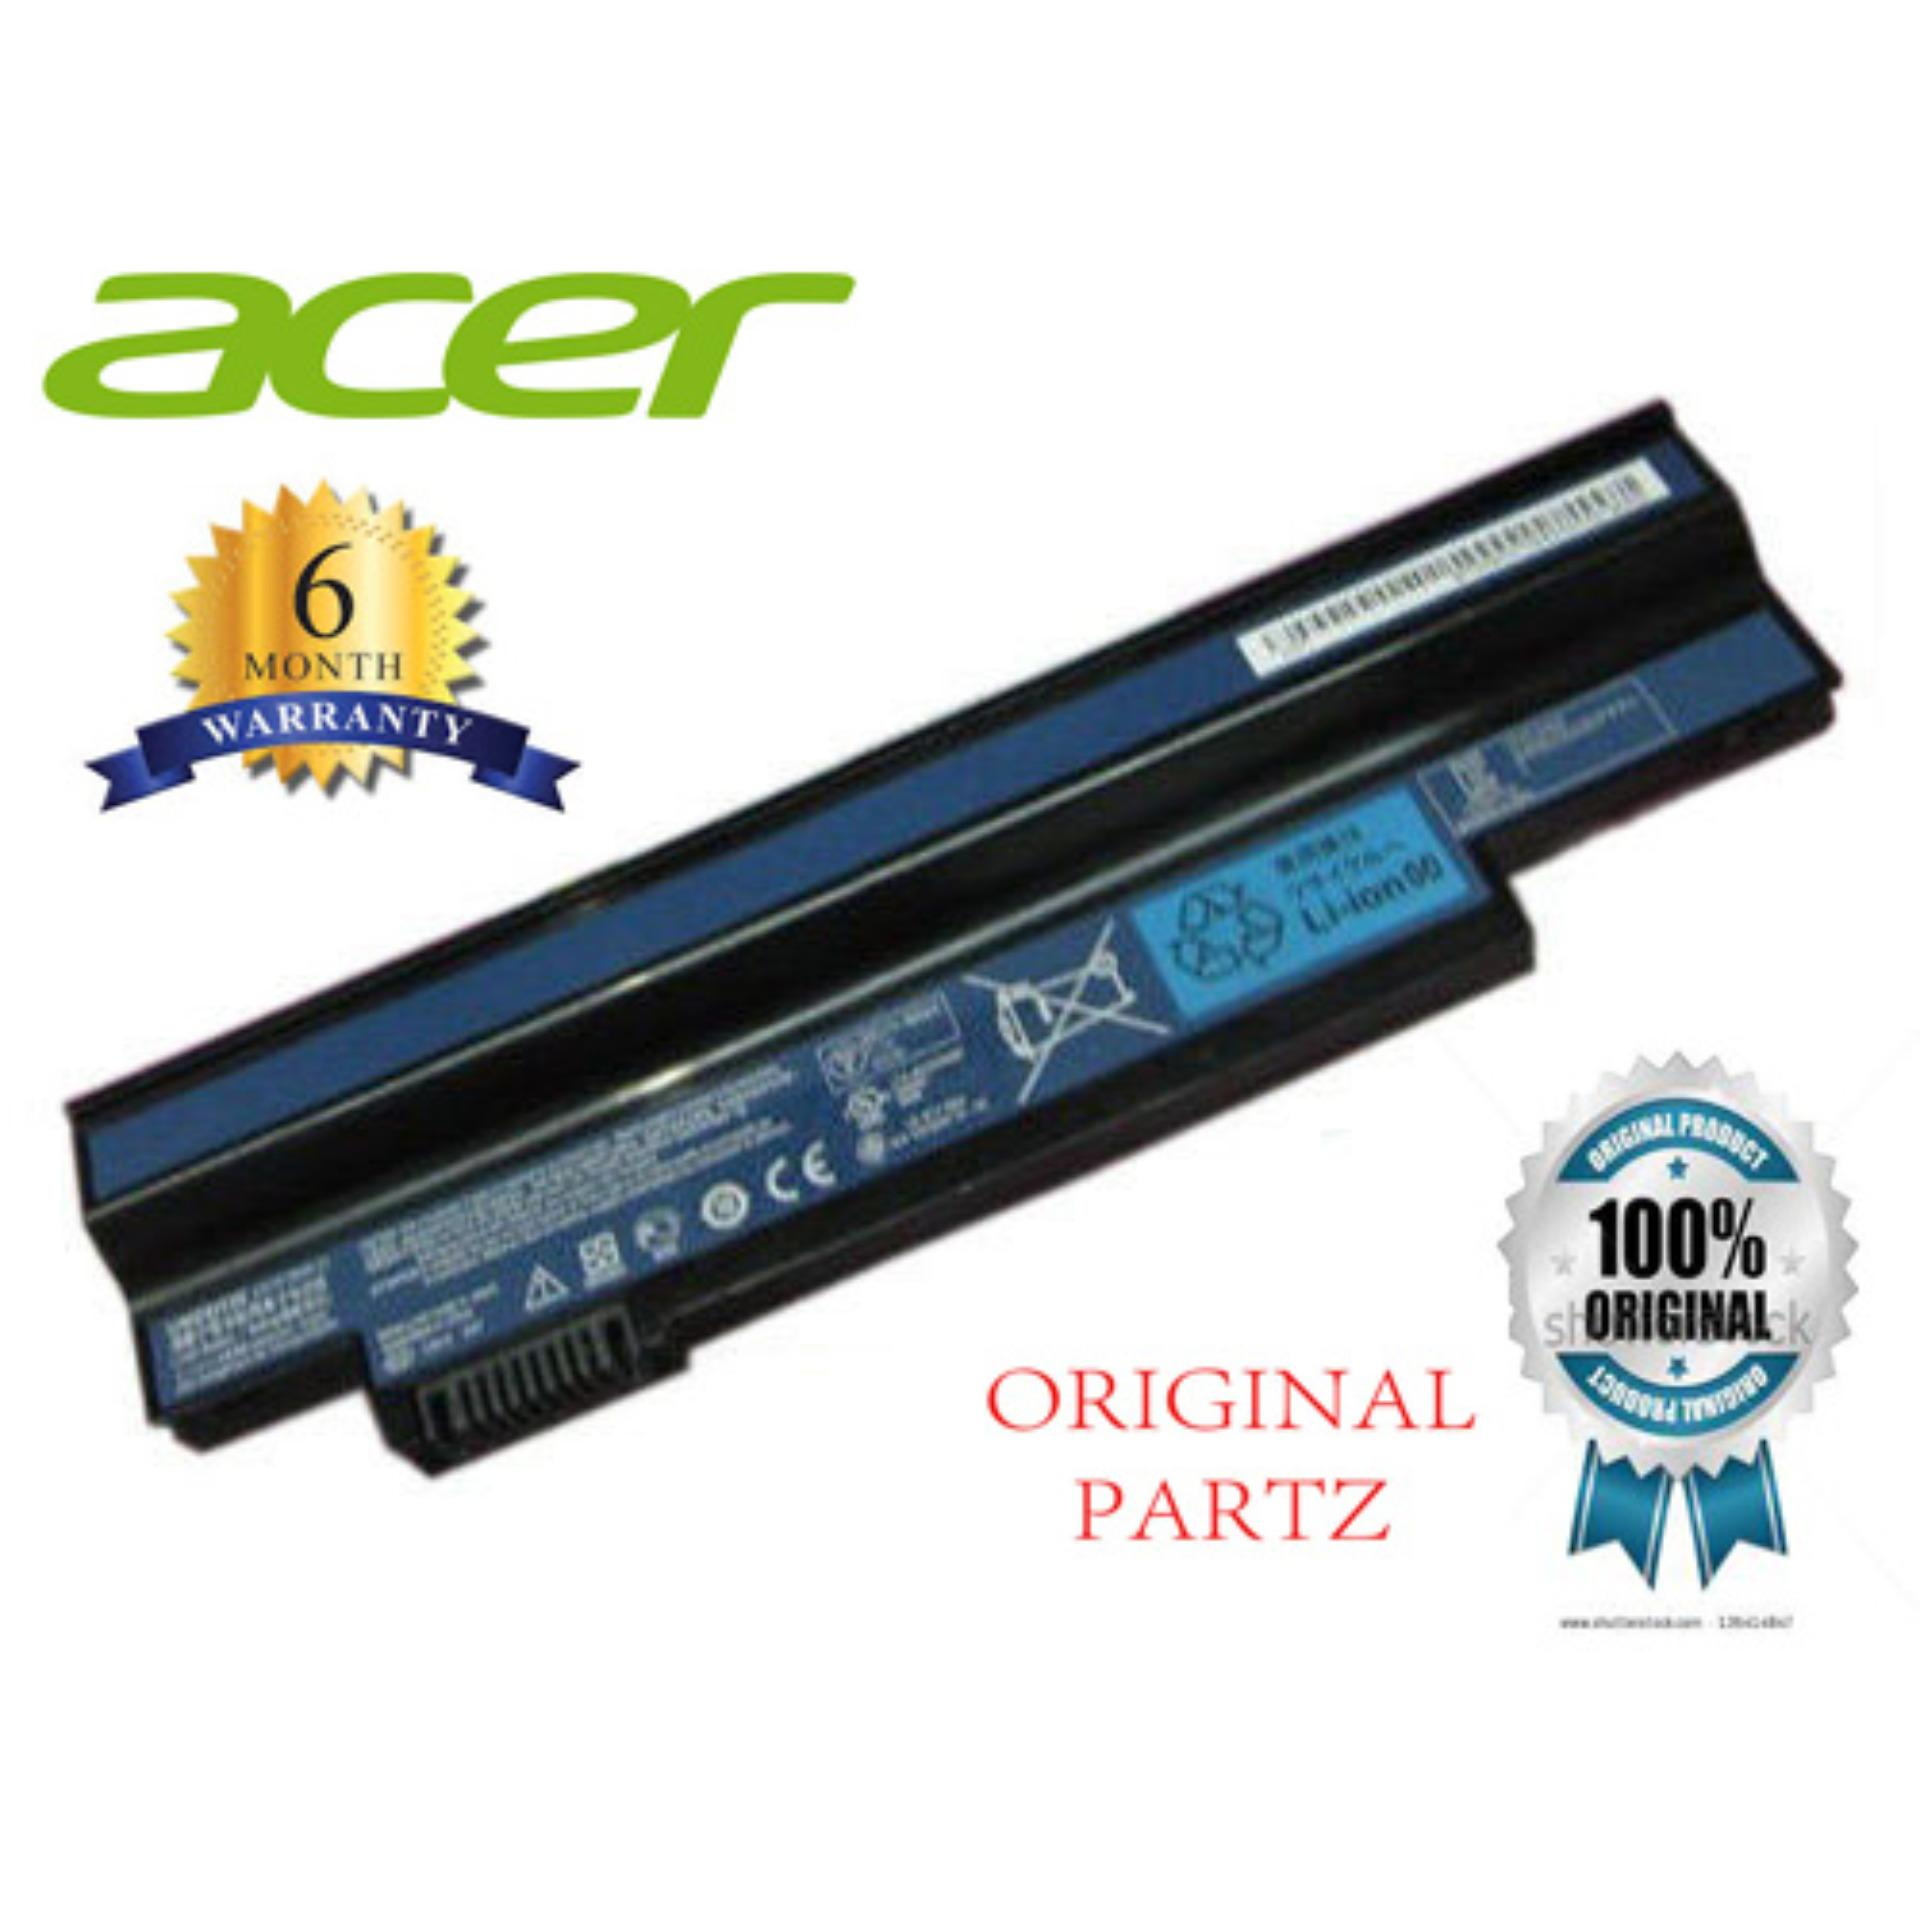 Harga Acer Original Baterai Notebook Laptop Aspire One 532H Hitam Black Termurah